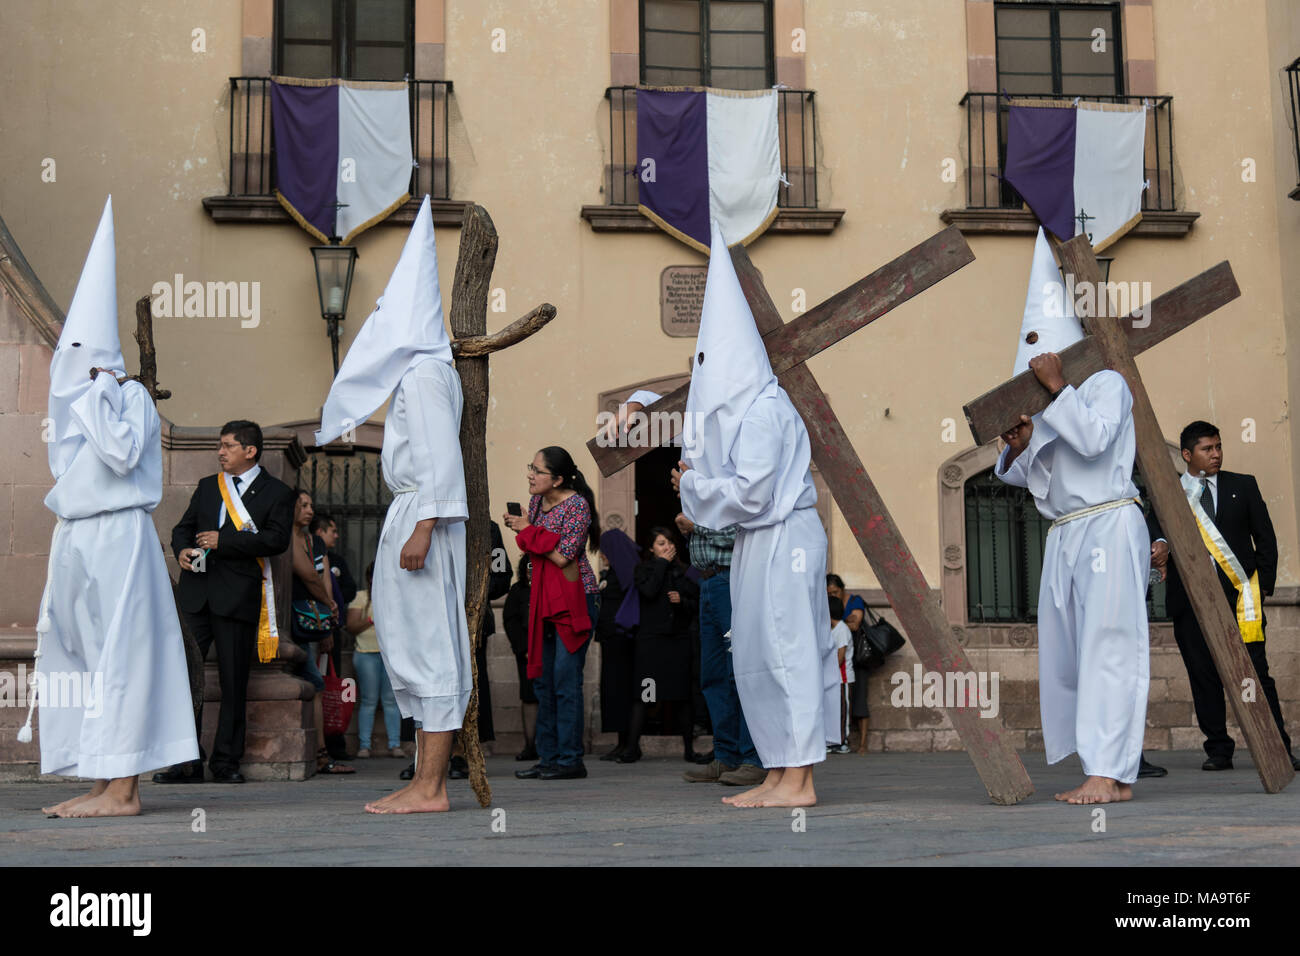 Queretaro, Mexico, 31 Mar 2018. Hooded penitents carry wooden crosses as they begin the Procession of Silence through the streets on Good Friday during Holy Week March 30, 2018 in Querétaro, Mexico. The penitents, known as Nazarenes, carry the heavy crosses and drag chains in a four hour march in memory of the passion of Christ. Credit: Planetpix/Alamy Live News - Stock Image